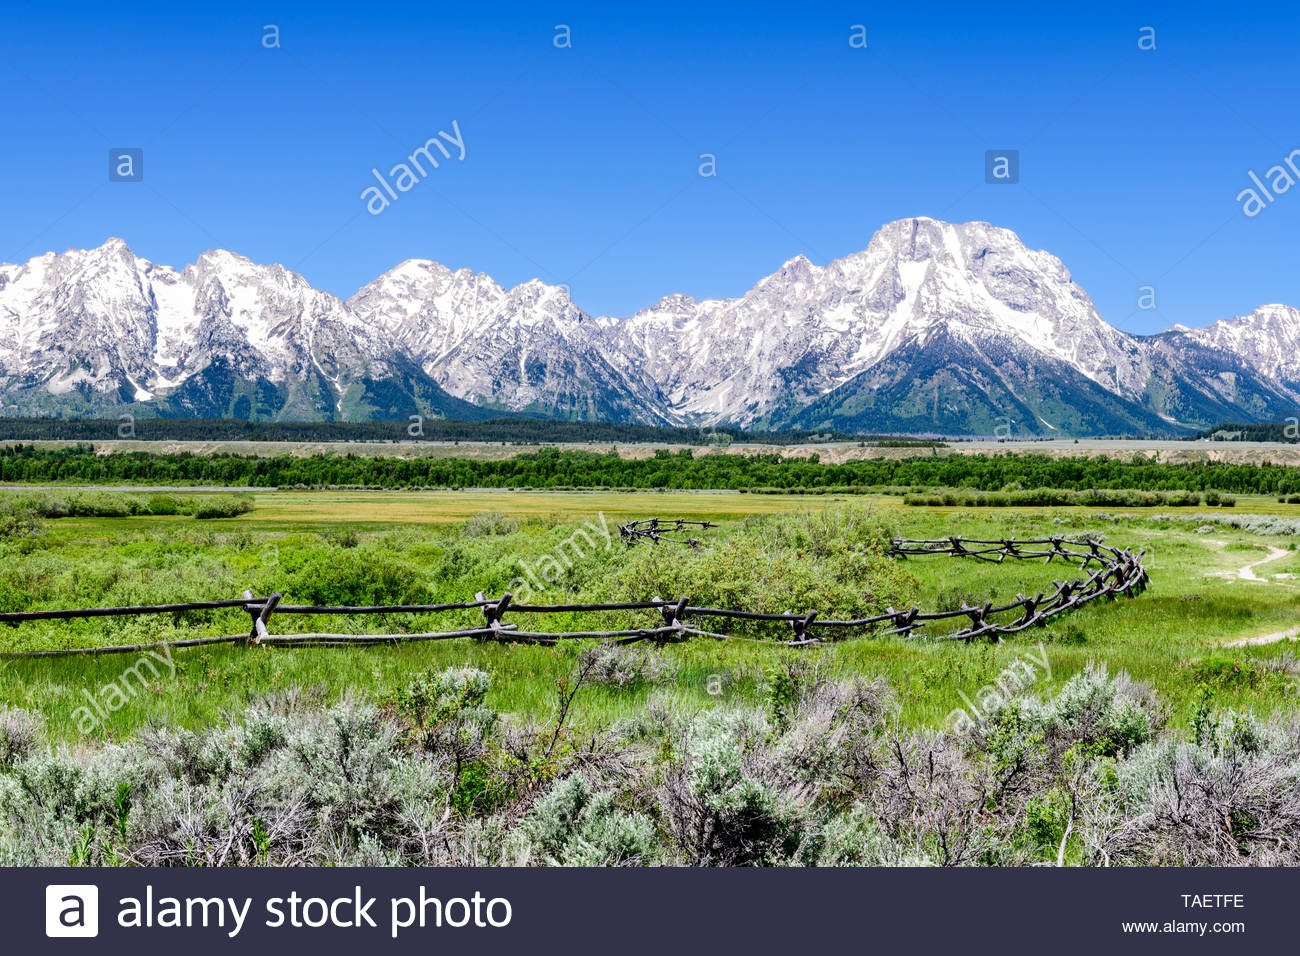 A fence with the Grand Tetons in the background in Grand Teton 1300x956